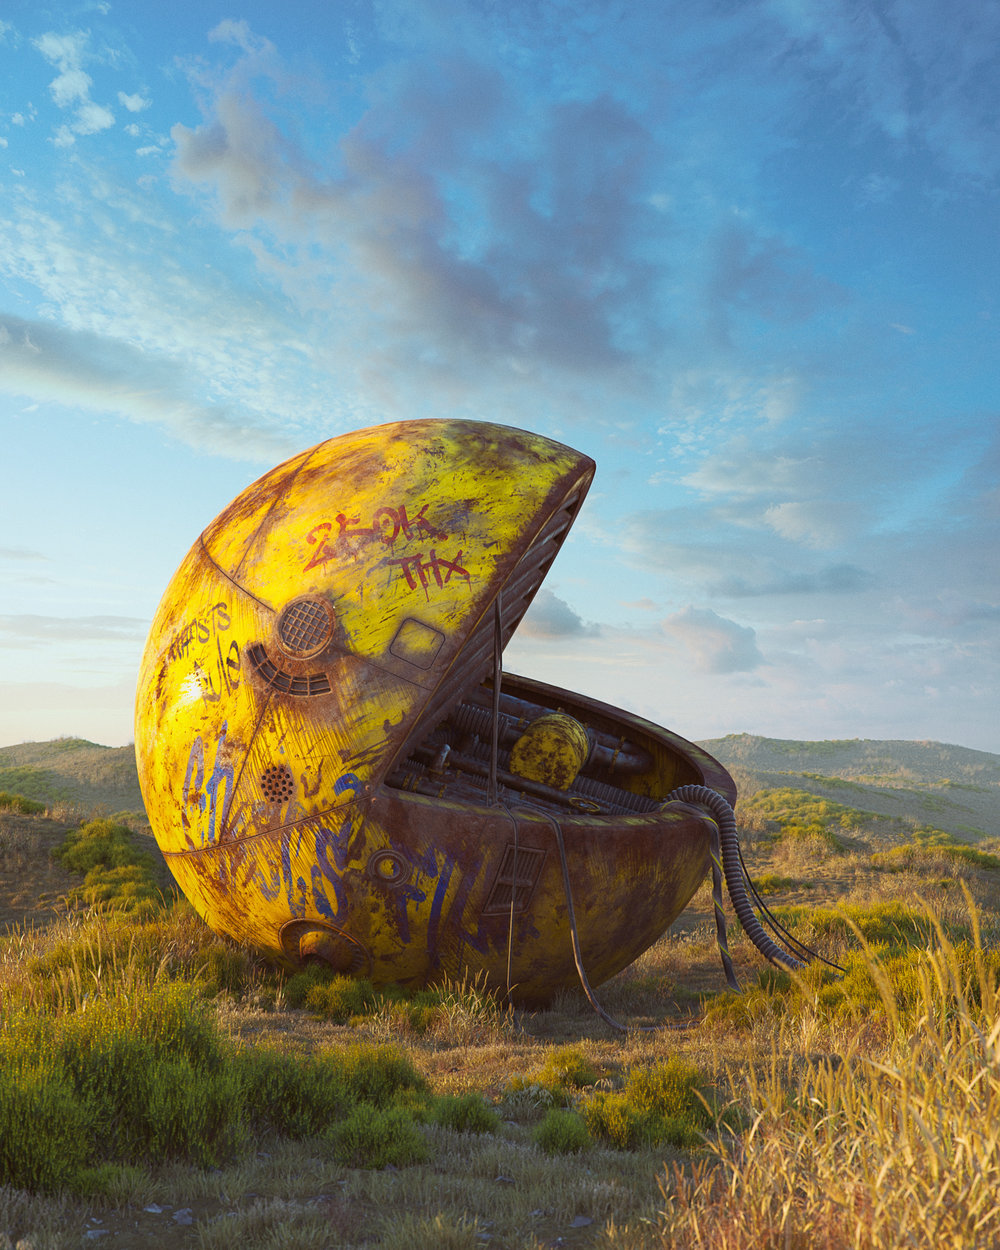 Pop culture dystopia - Filip Hodas